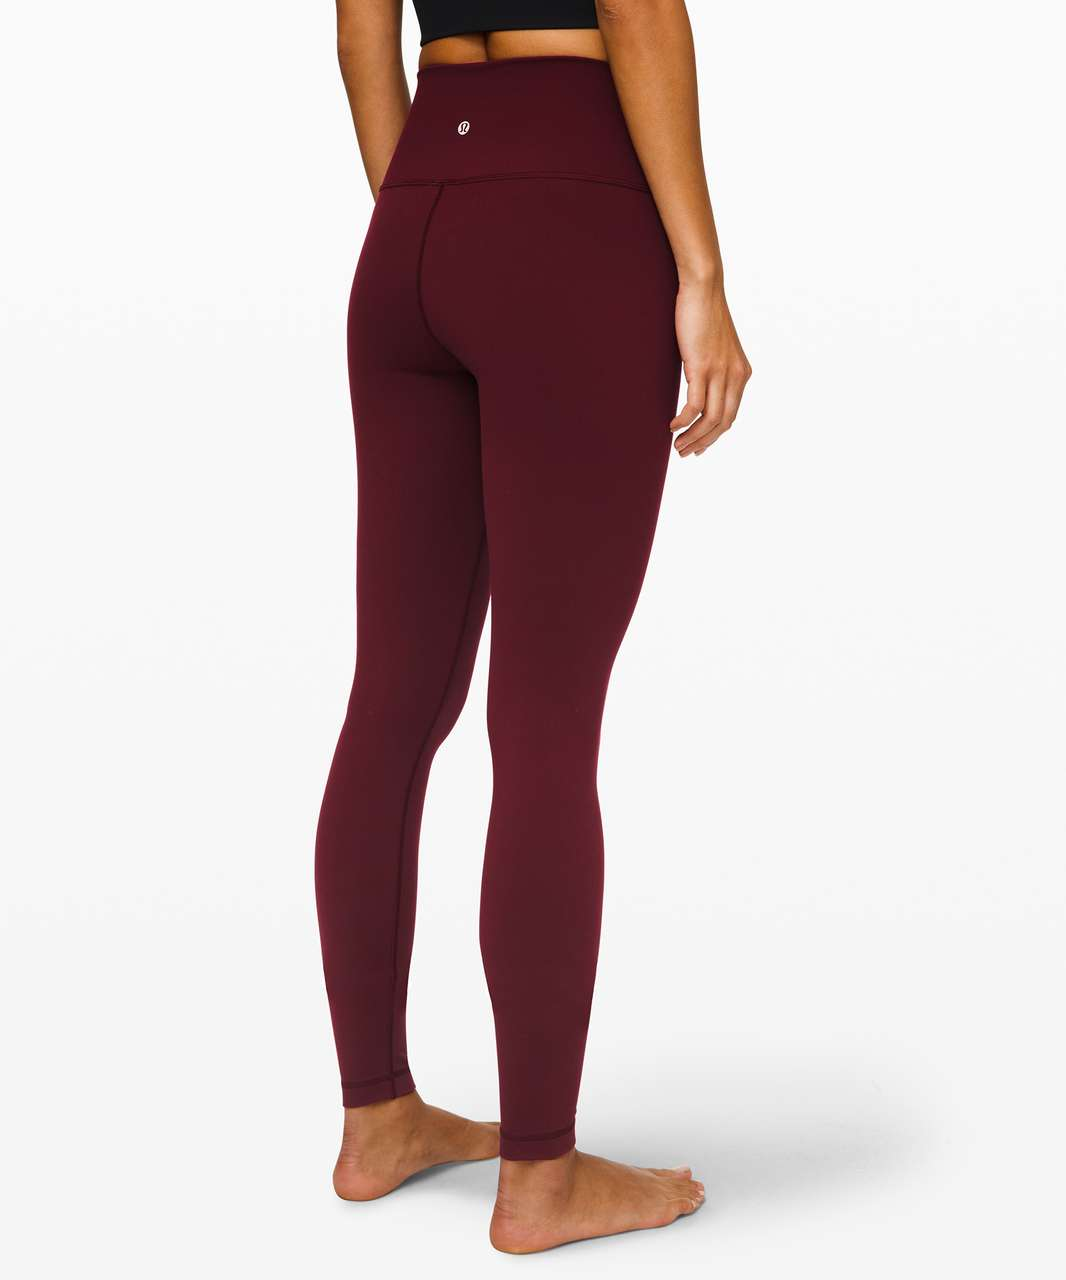 "Lululemon Wunder Under High-Rise Tight 31"" *Full-On Luxtreme - Garnet"